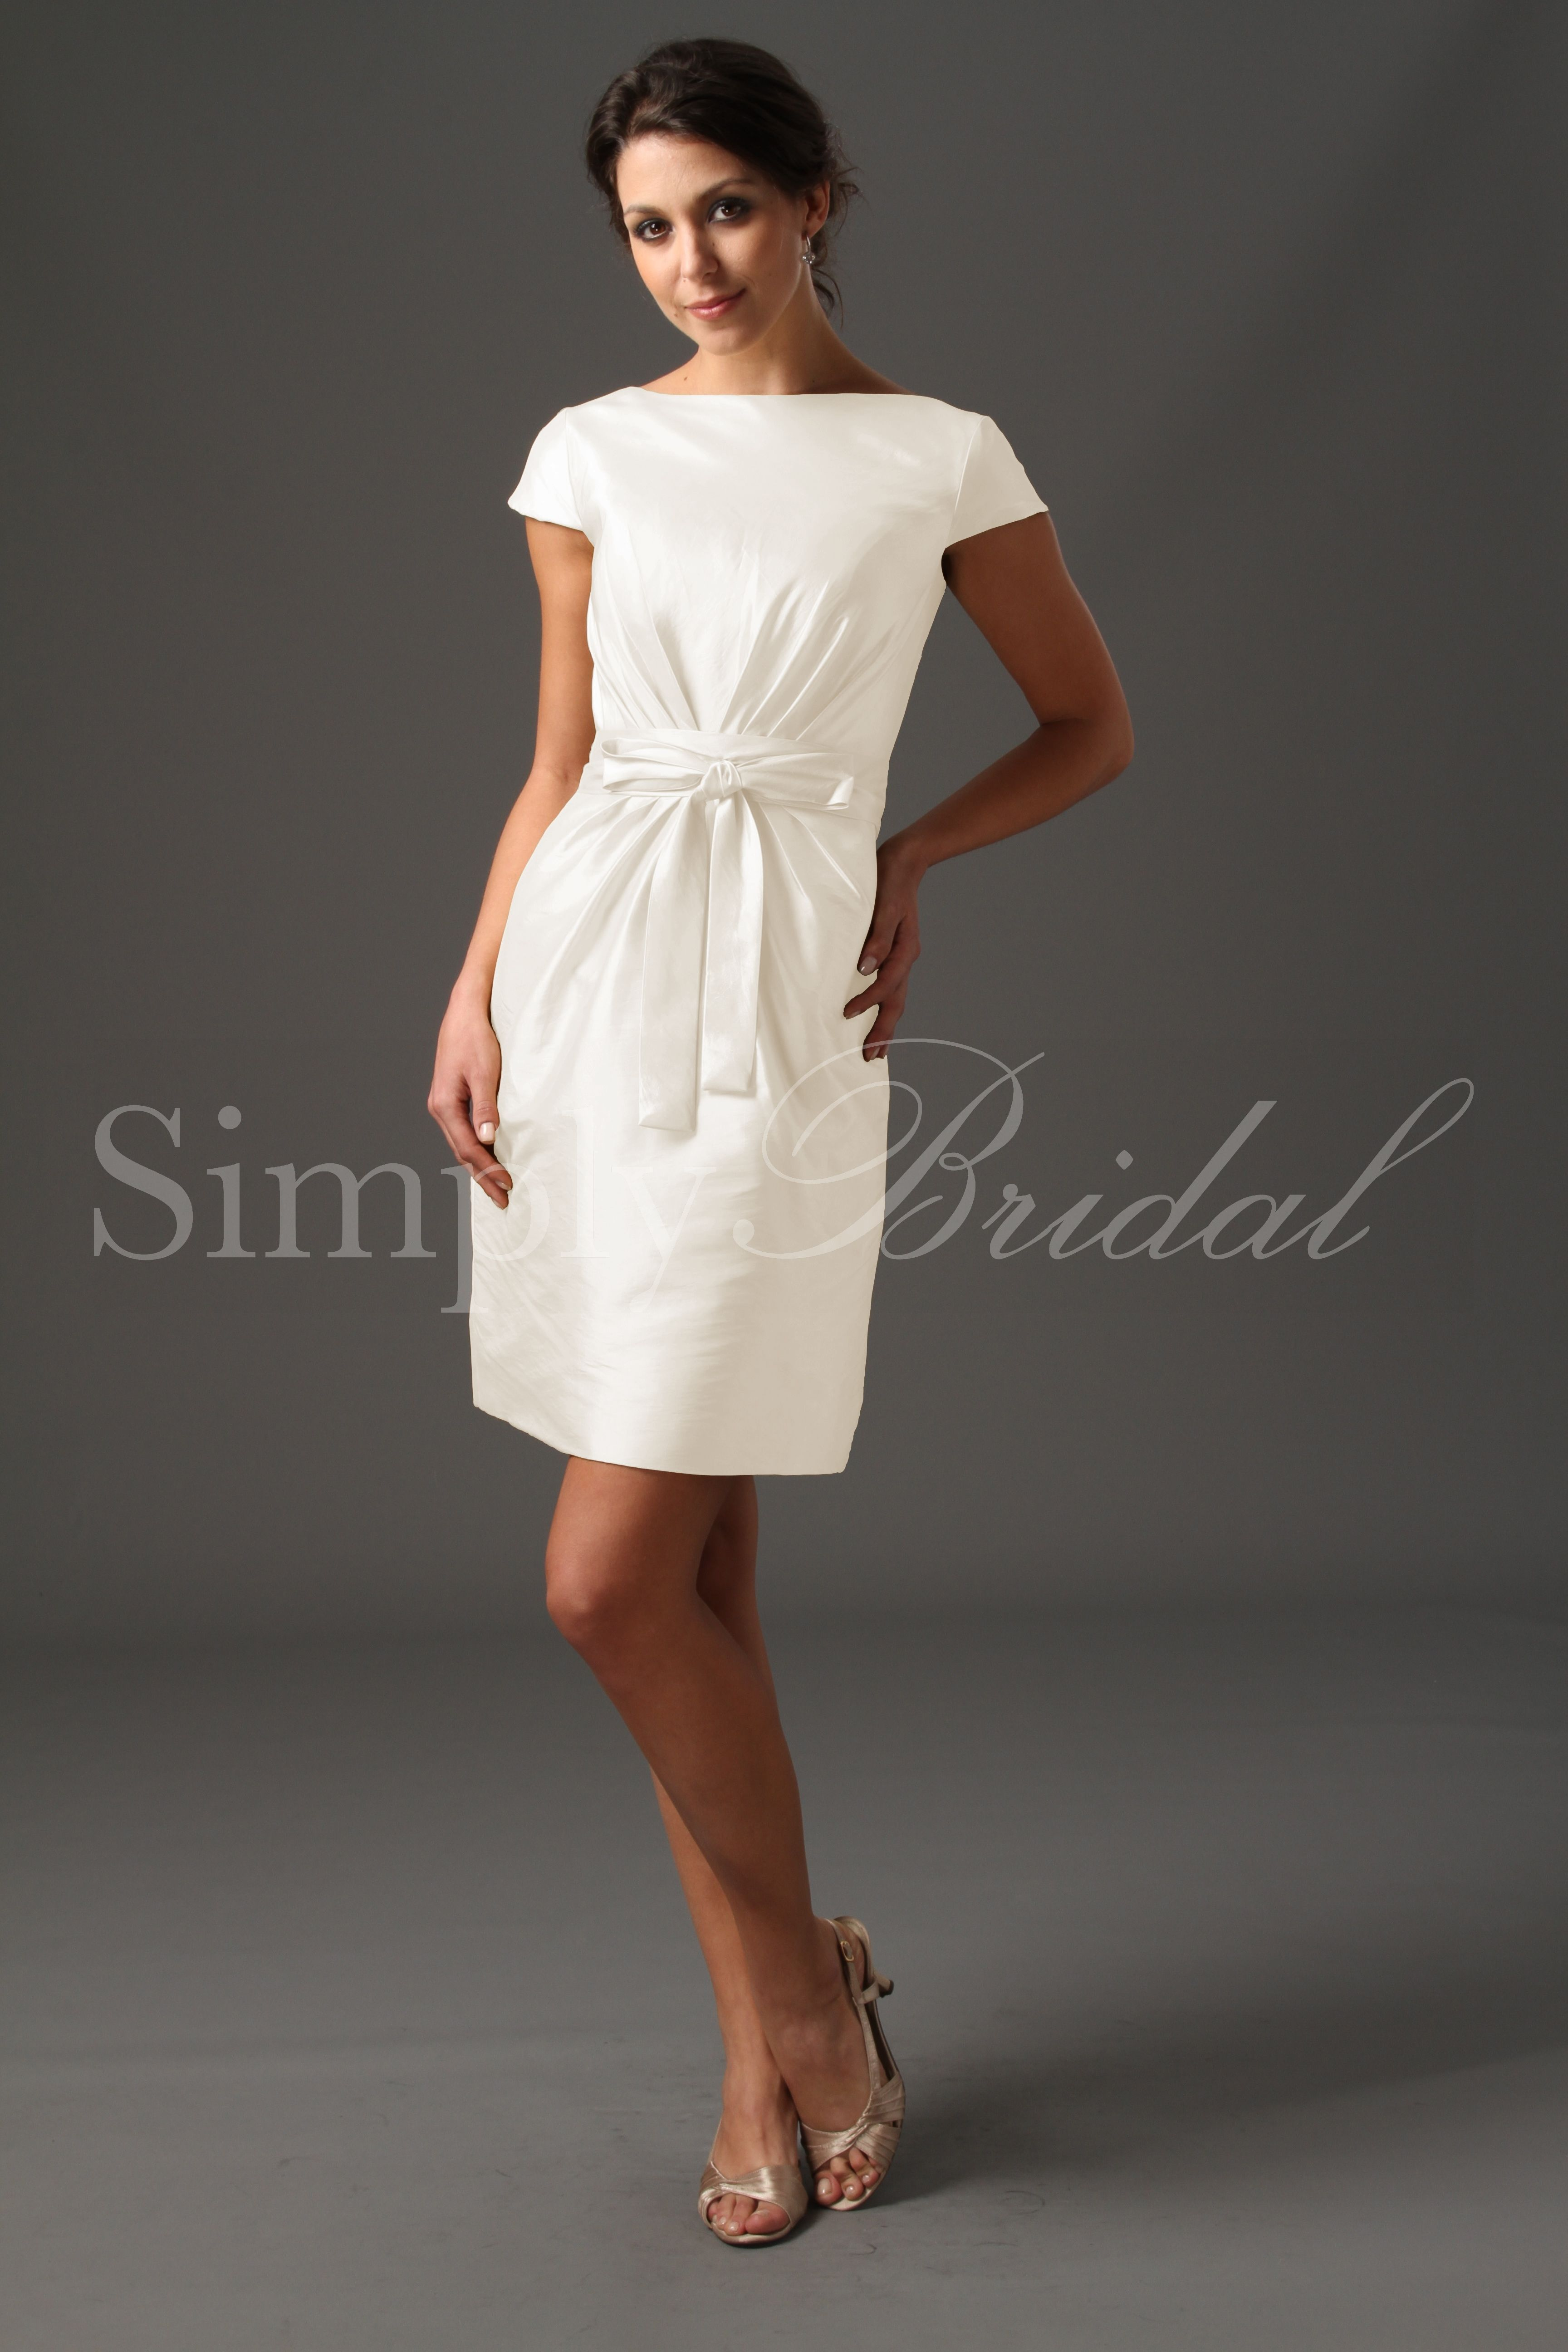 Simple white wedding dresses  perfect for a simple wedding xoox  Wedding Ideas  Pinterest